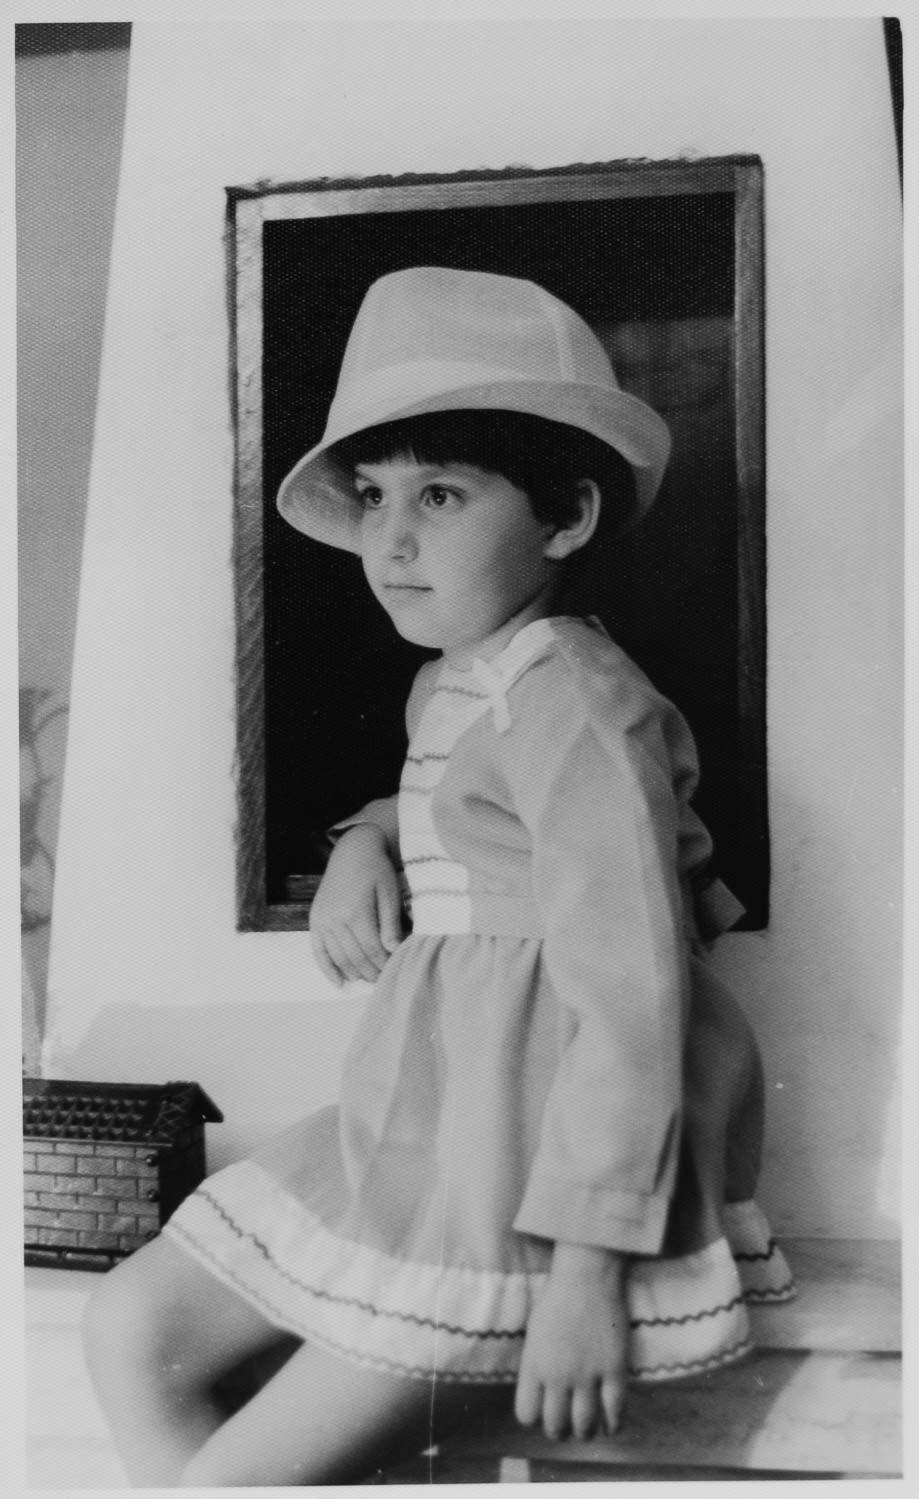 Little girl with white hat.